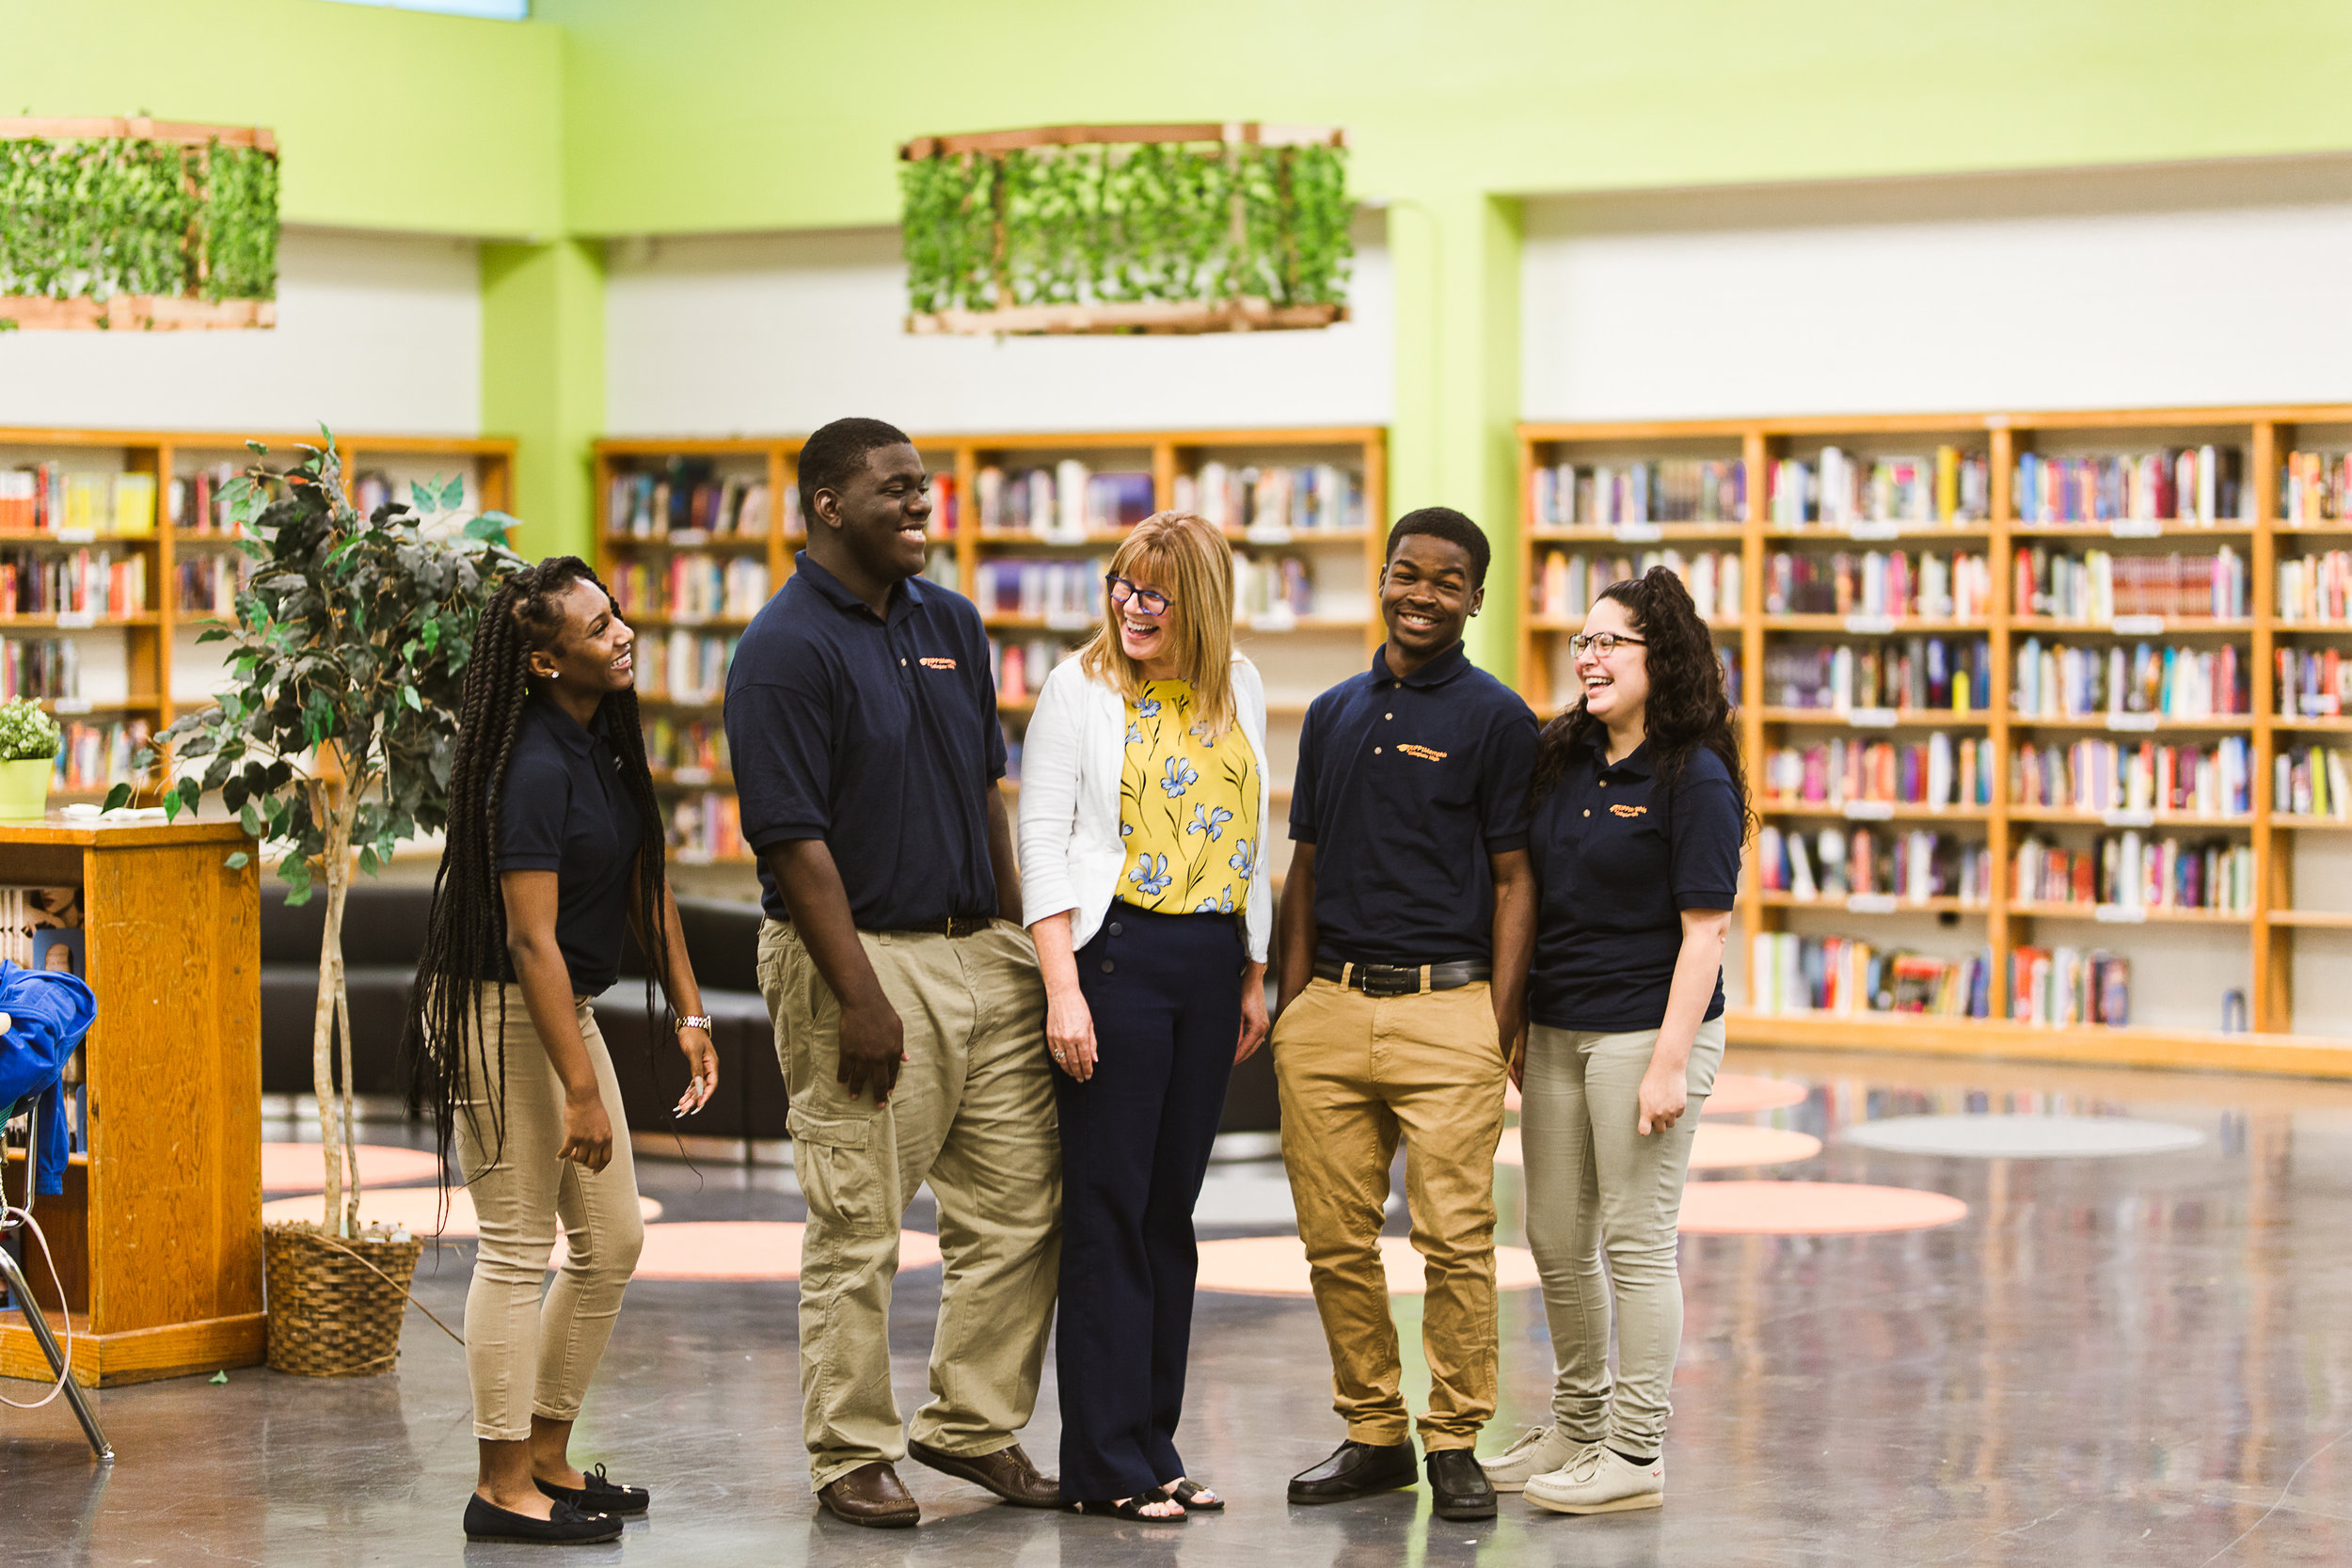 Take a Tour - Visit our two thriving libraries or a library in progress to see how you can help. Our libraries are always open to the family and communities that help our students thrive.